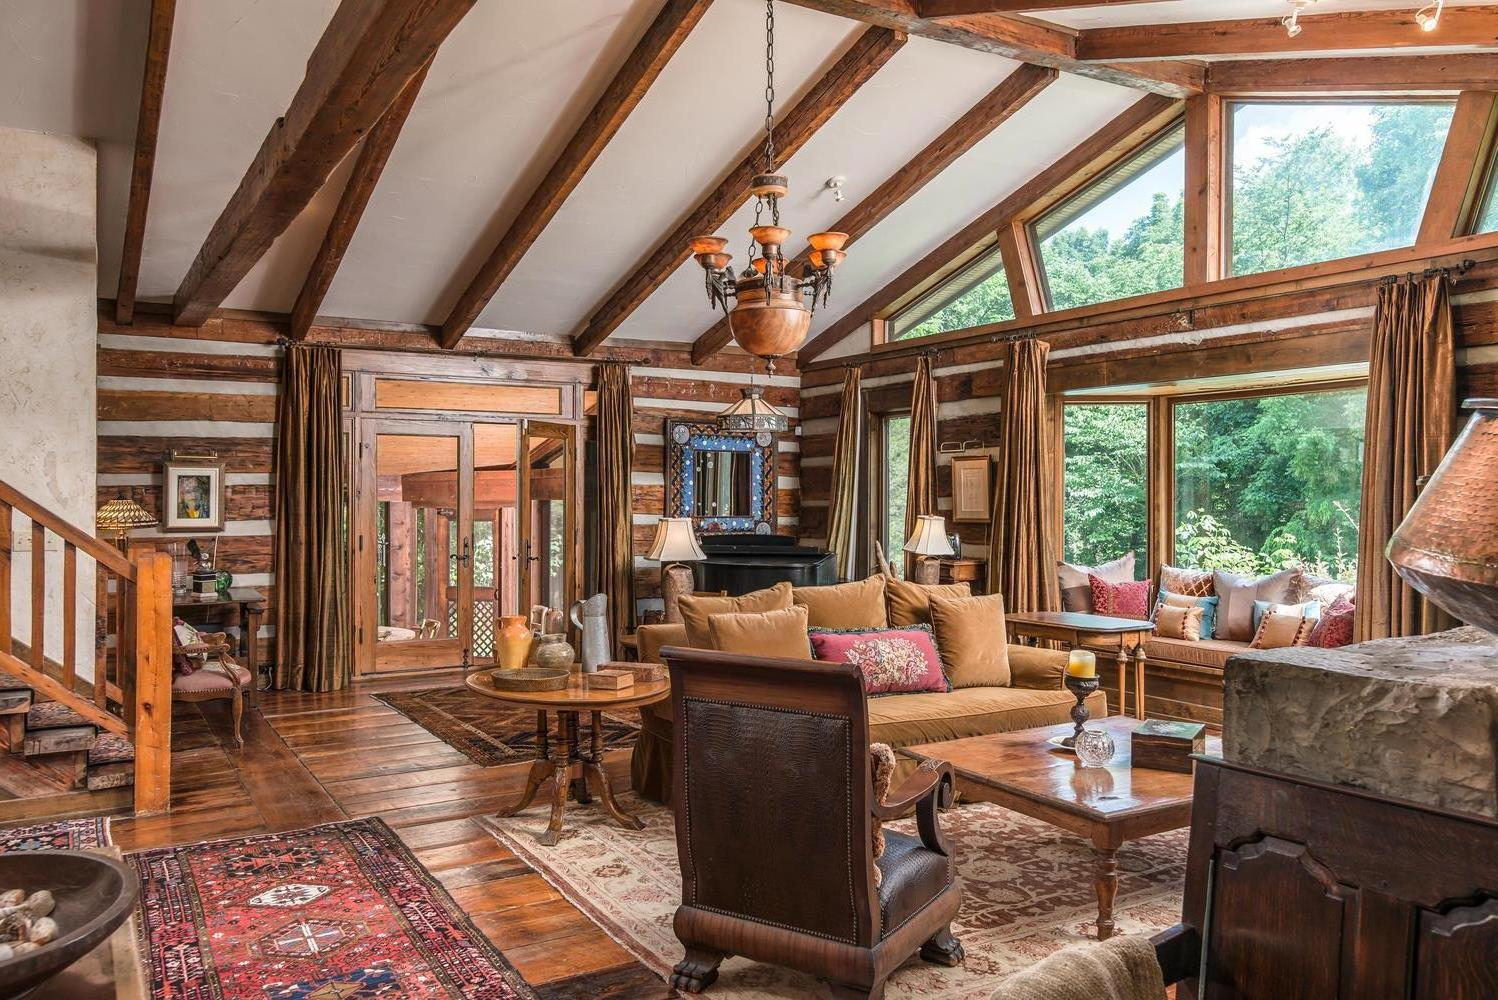 Rare spectacular hidden retreat in Davidson county.  This home is constructed from 2 civil war era log cabins, moved from Kentucky and reassembled on site.  Floors are 24in wide heart pine.  Come see this remarkable gem.  Private pool, and Bocce court. 4 acres fenced in for pets. Total of 21+ acres included with this home